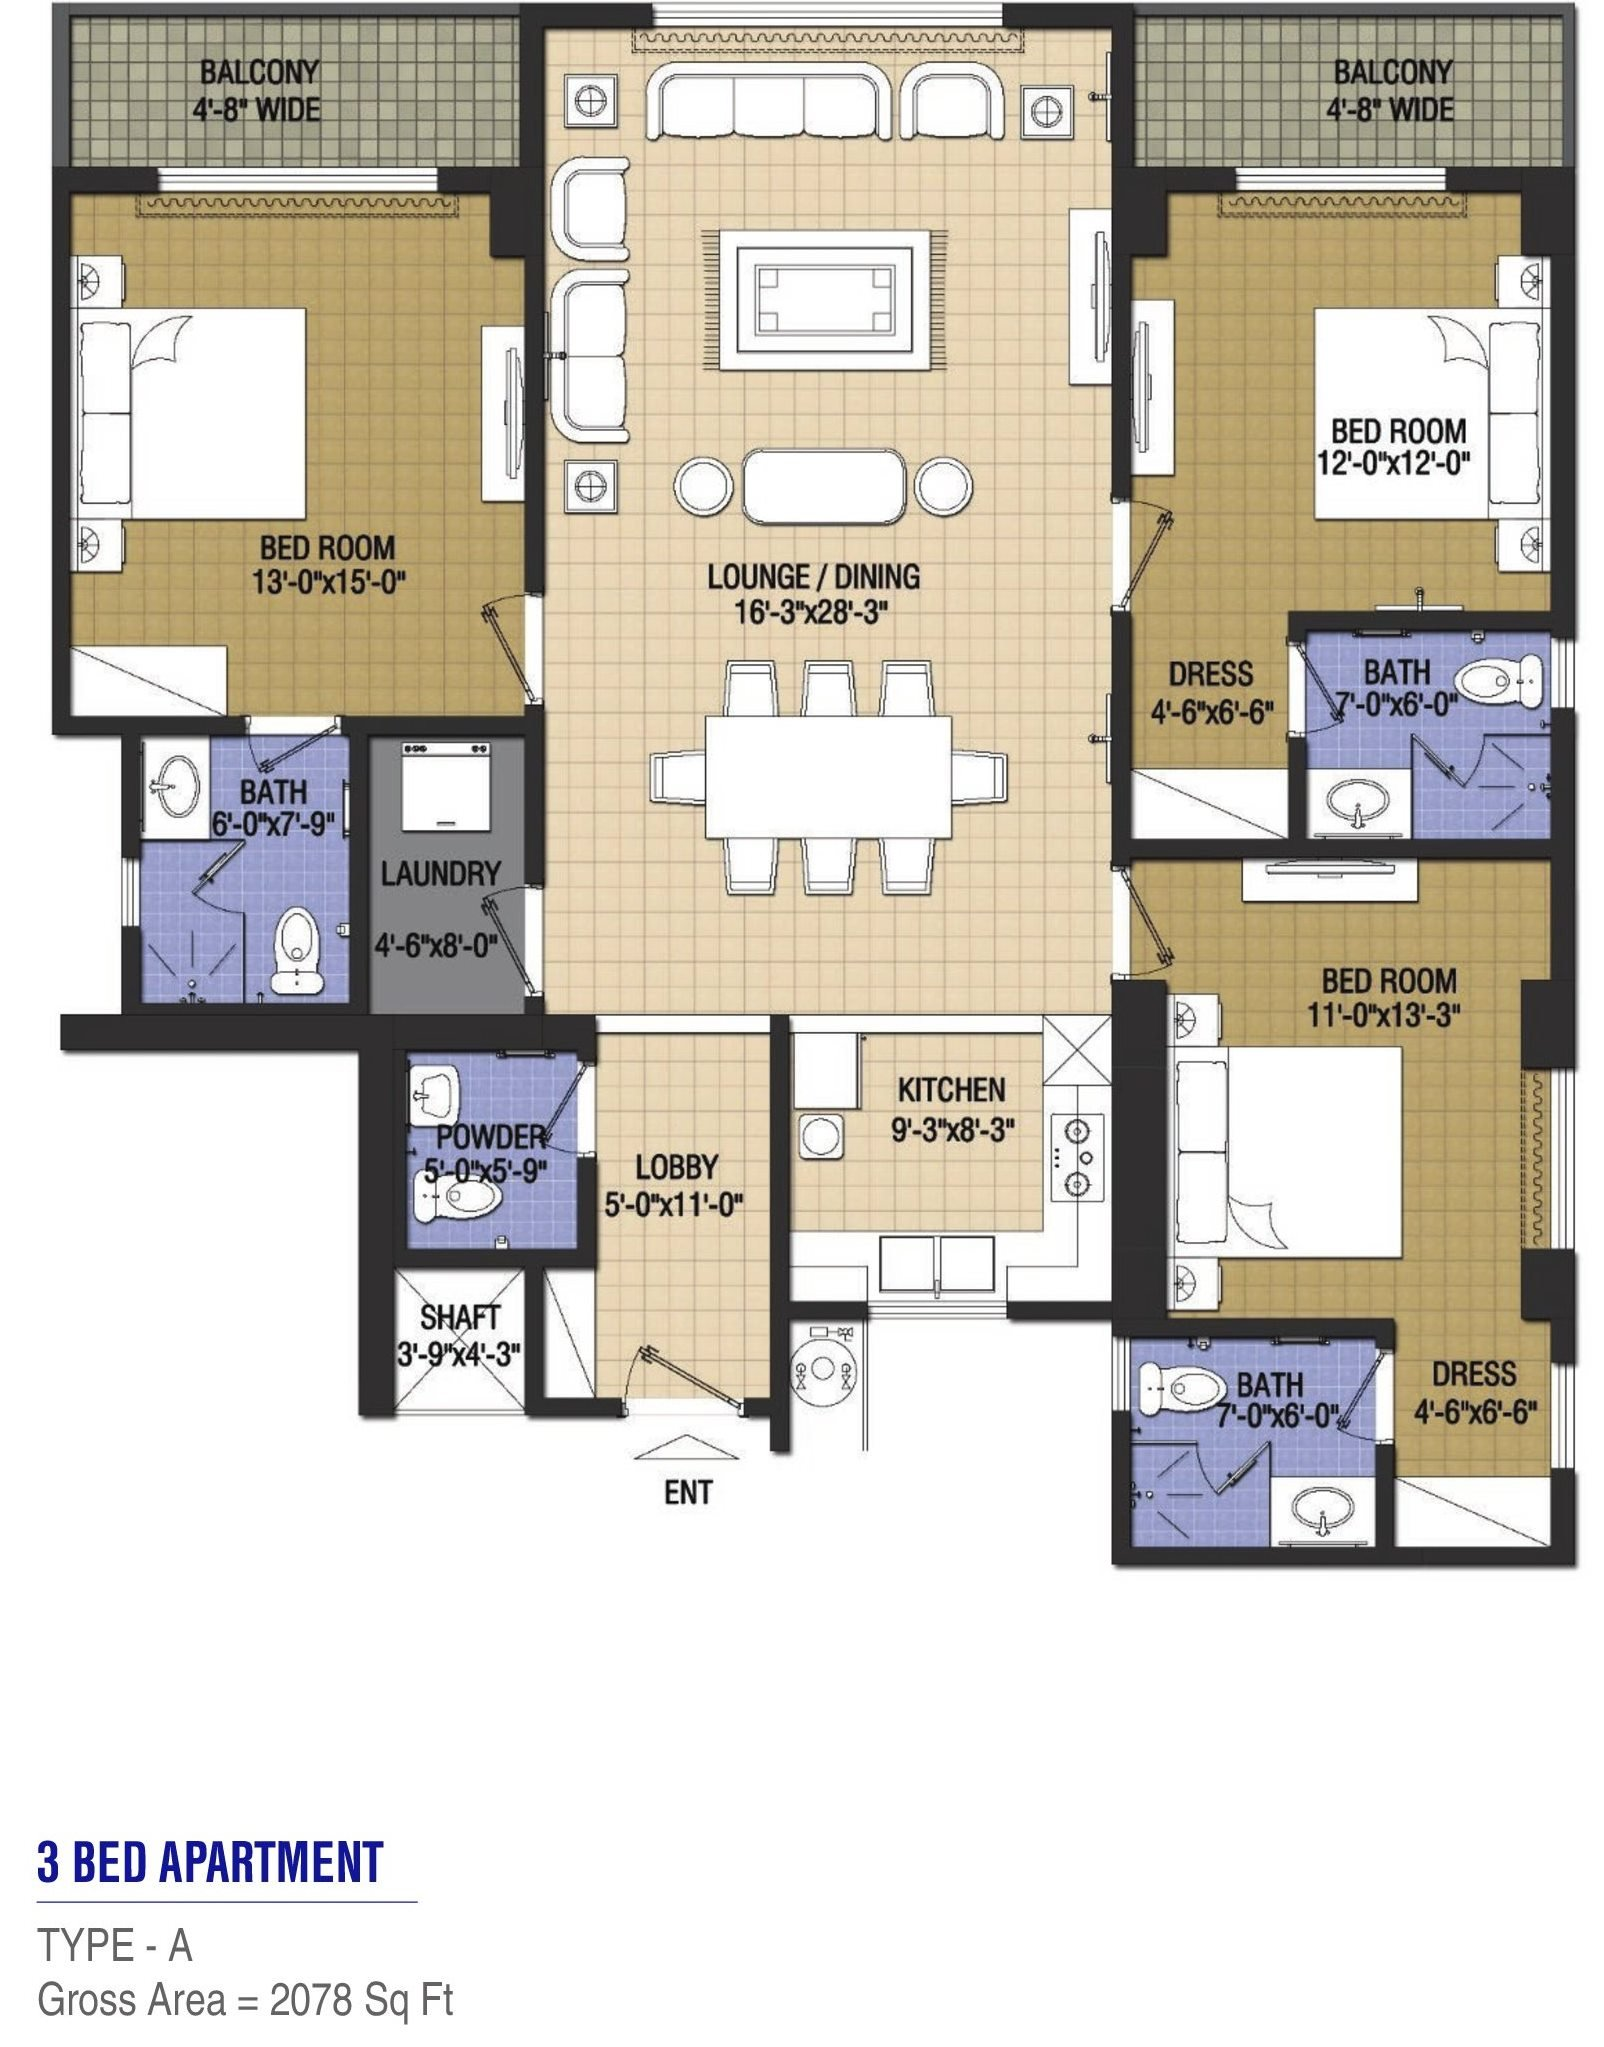 Goldcrest Chic 1 - 3 bed - Type A